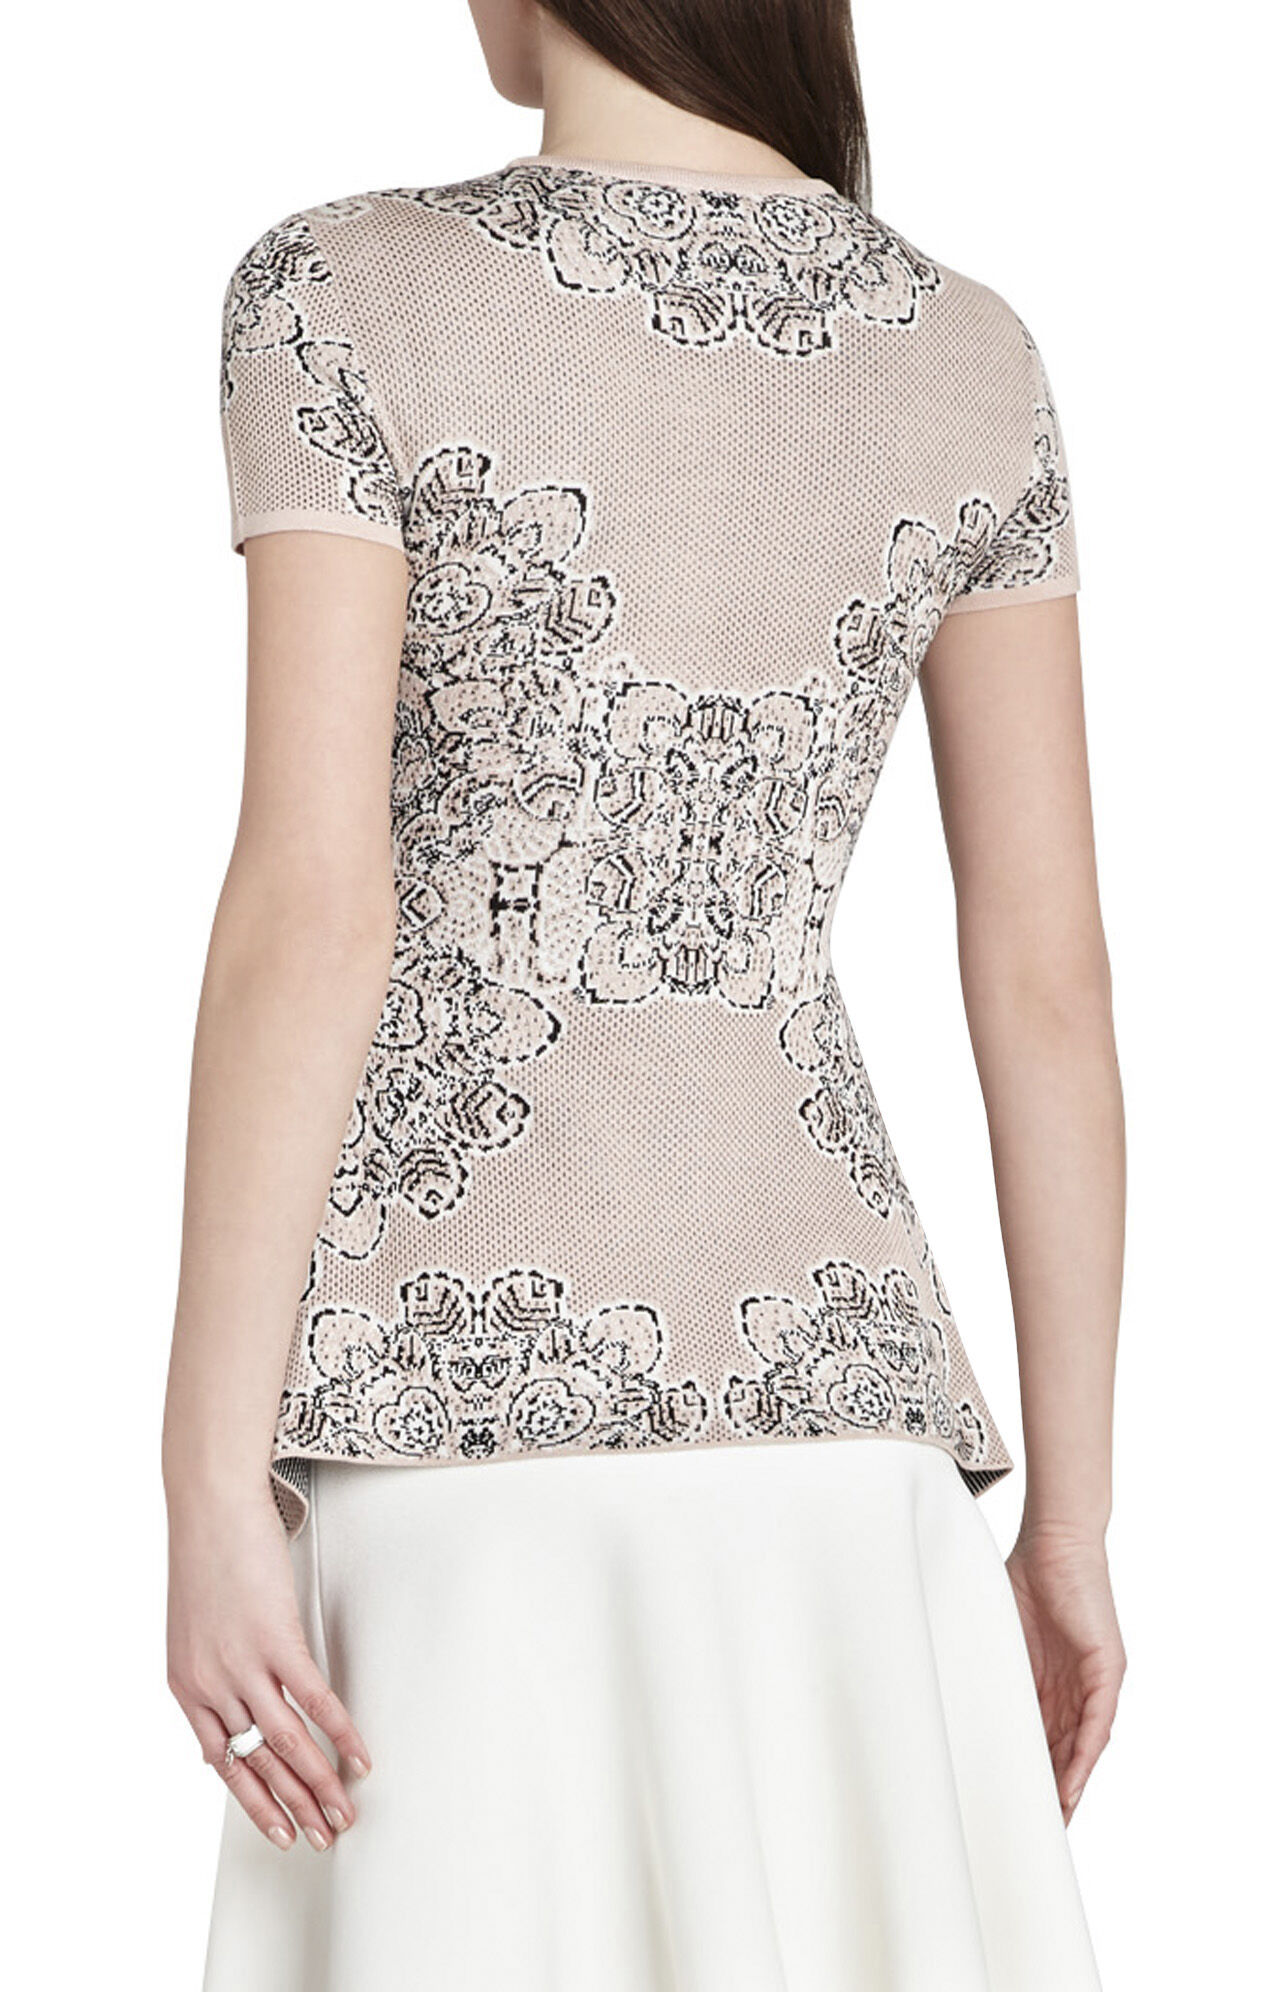 Darby Western Floral Jacquard Handkerchief Pullover